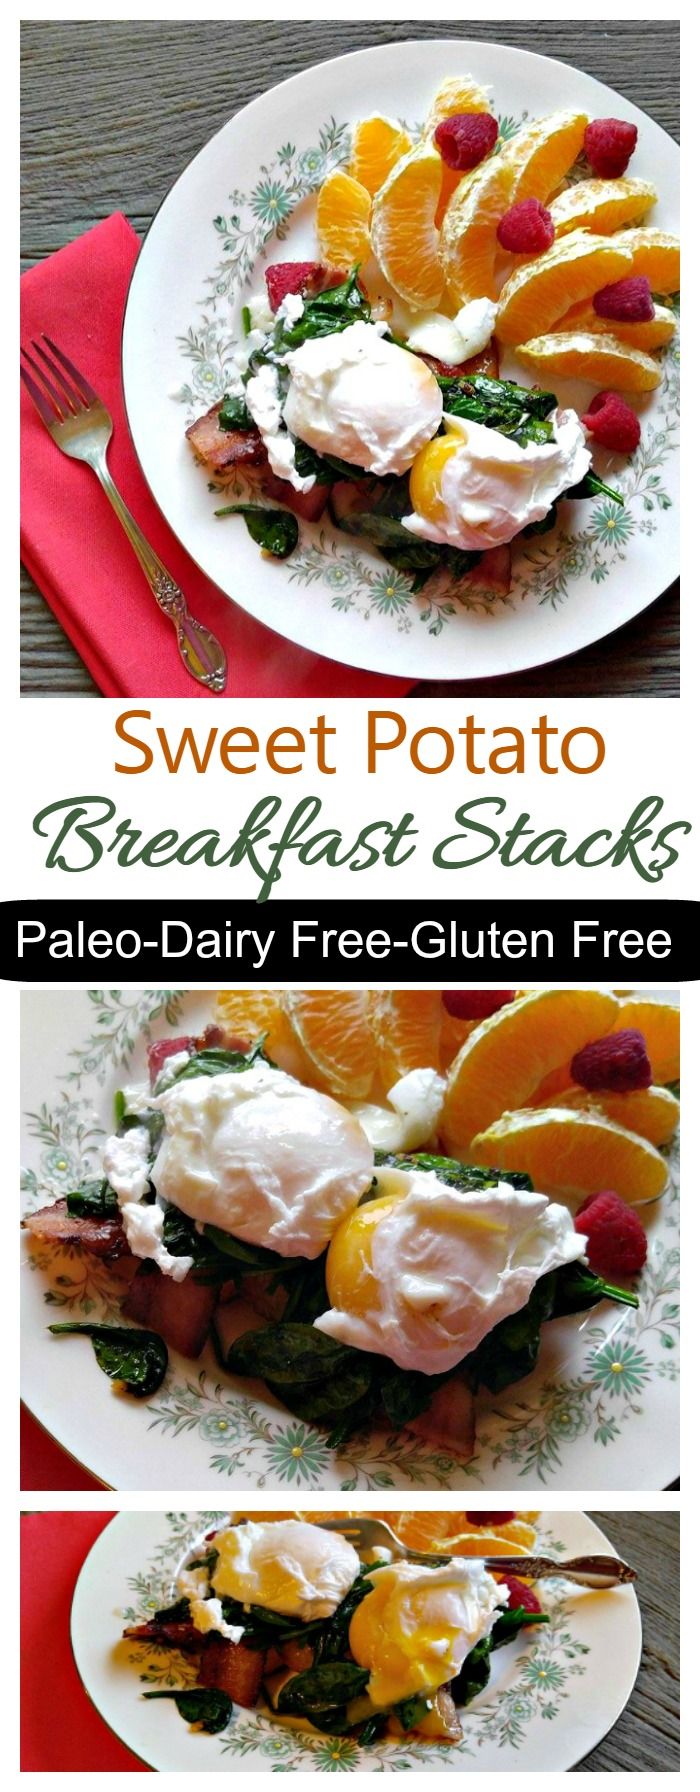 These sweet potato breakfast stacks have amazing layers of hearty flavor that will keep you full (and satisfied) until lunch time.